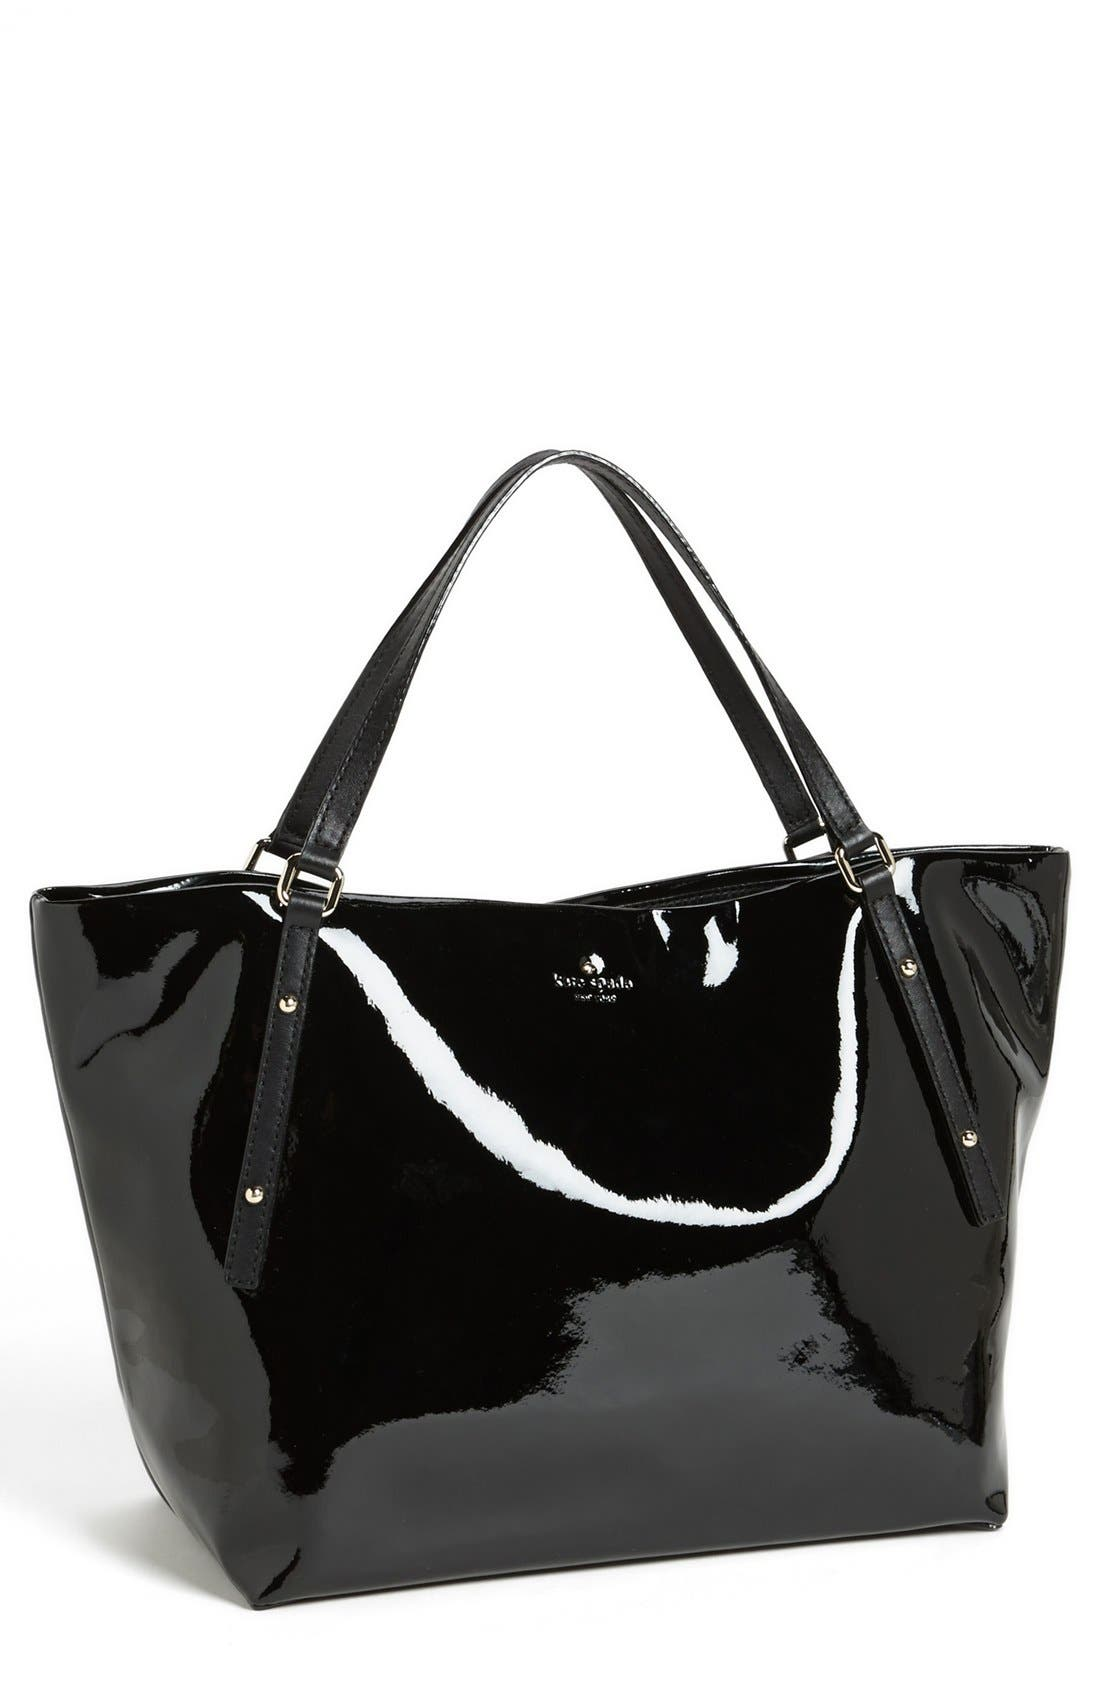 'jackson square - sophie' patent leather tote, large,                         Main,                         color, 001